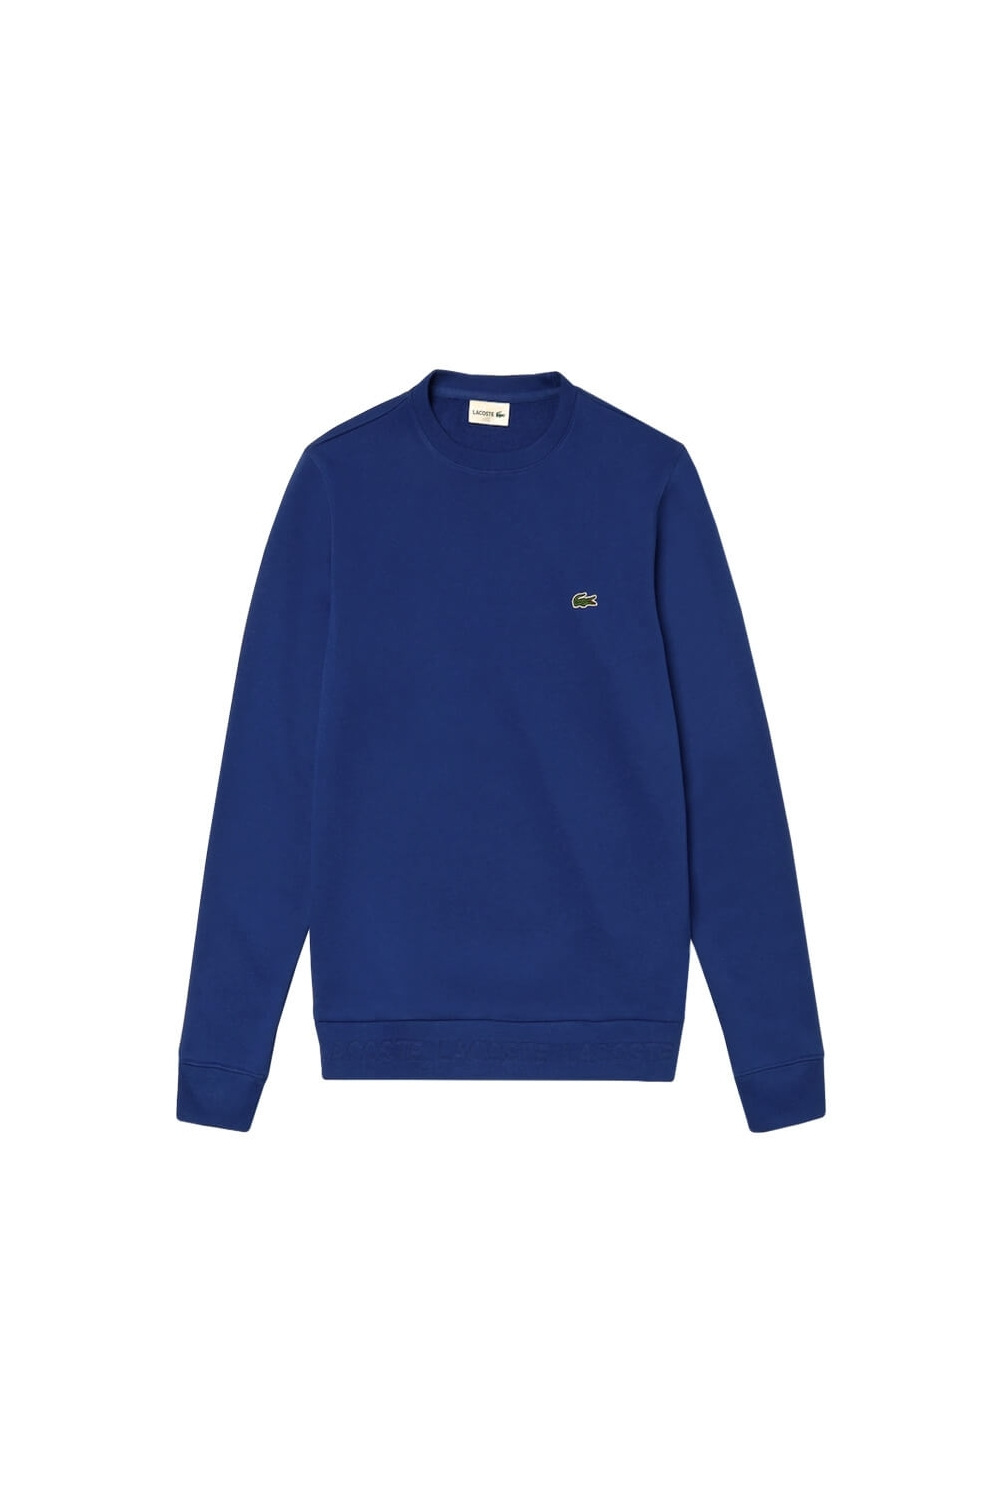 highly praised kid superior materials Lacoste Crew Neck Contrast Accents Sweatshirt Bright Blue Size: SIZE 4